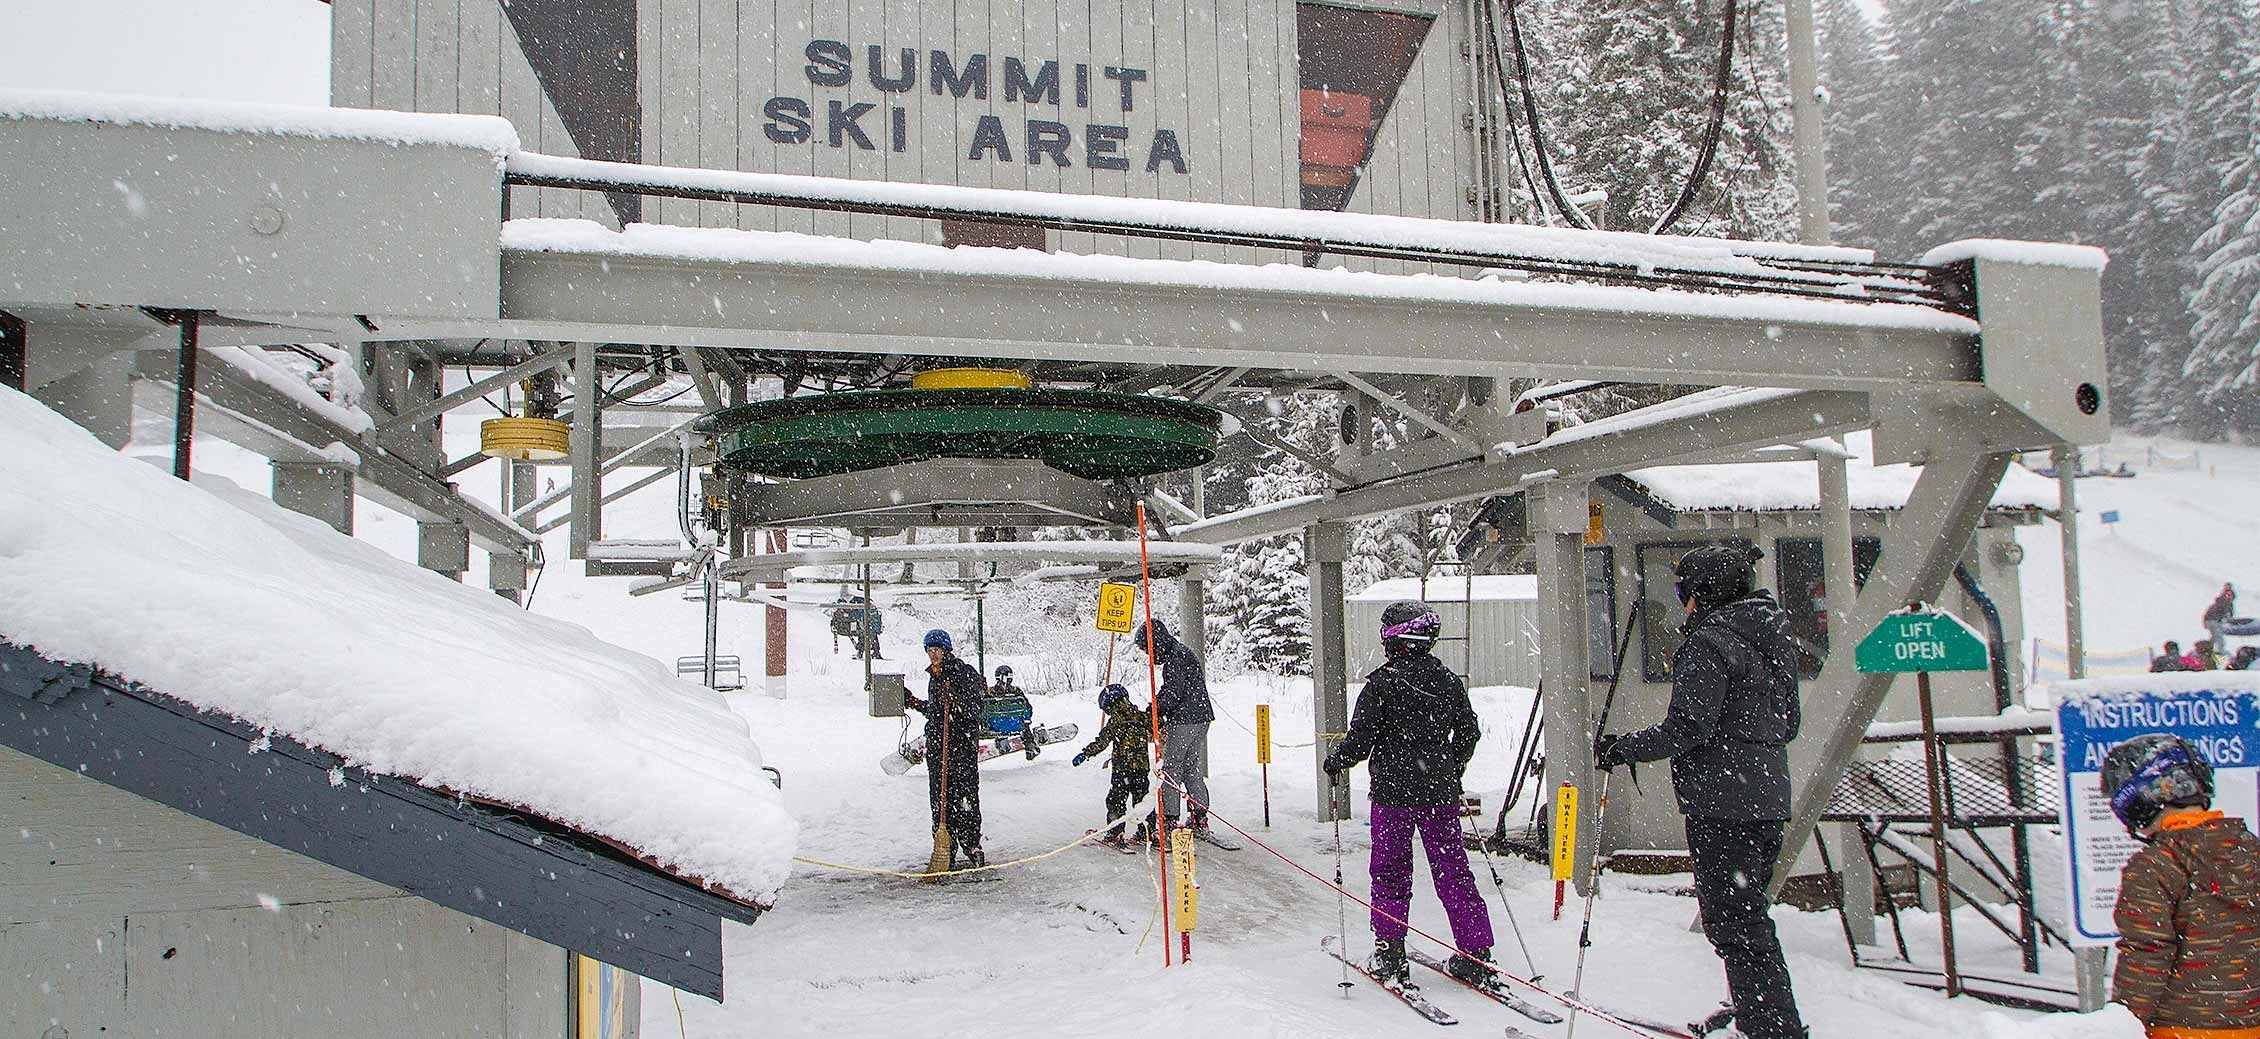 SUMMIT SKI AREA